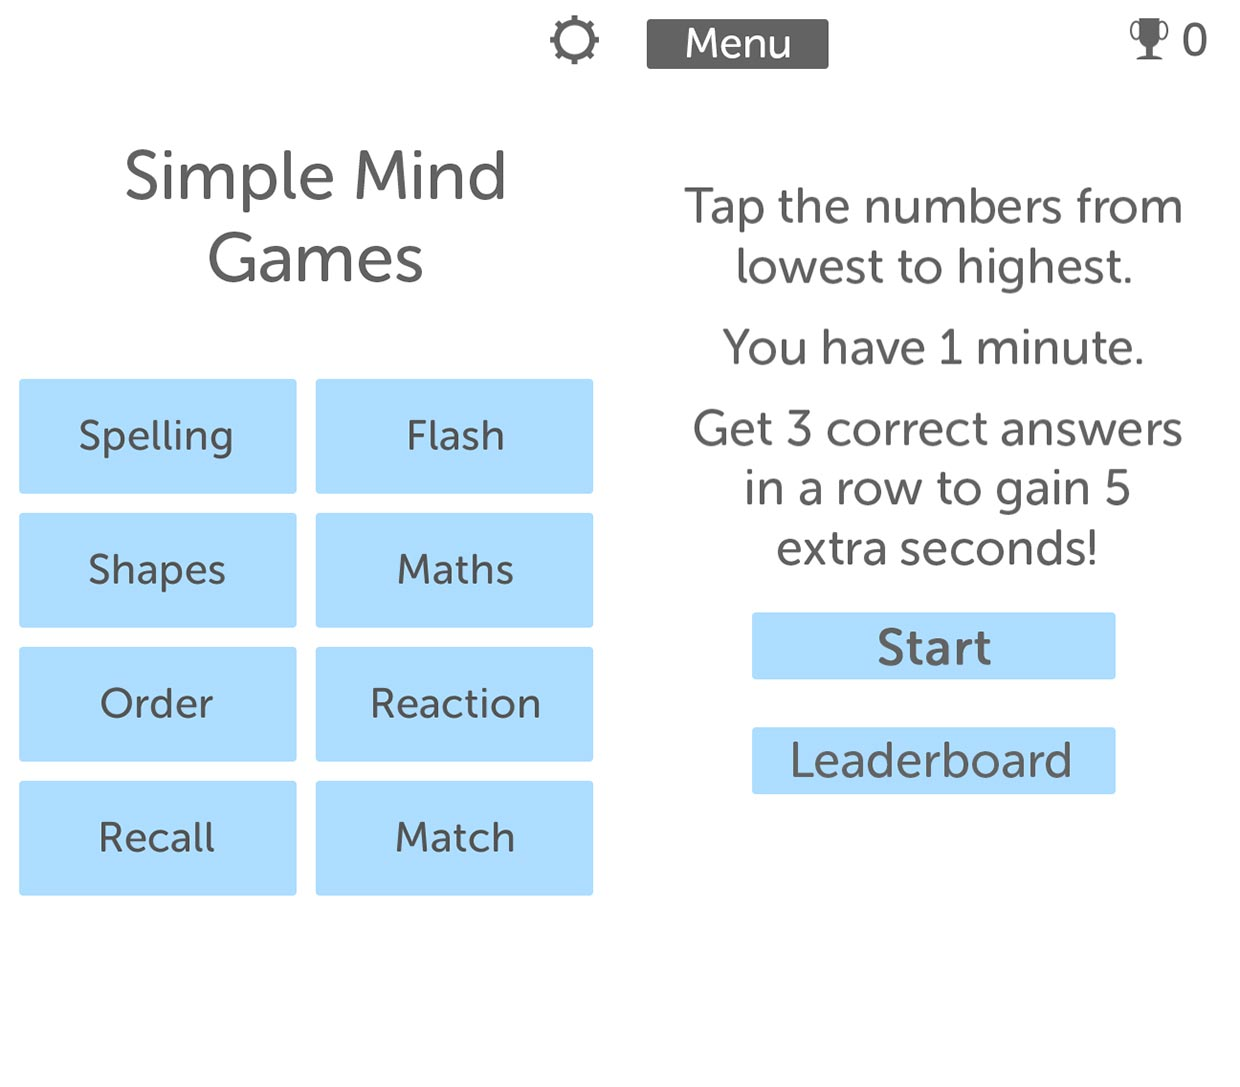 Simple Mind Games For Iphone Review